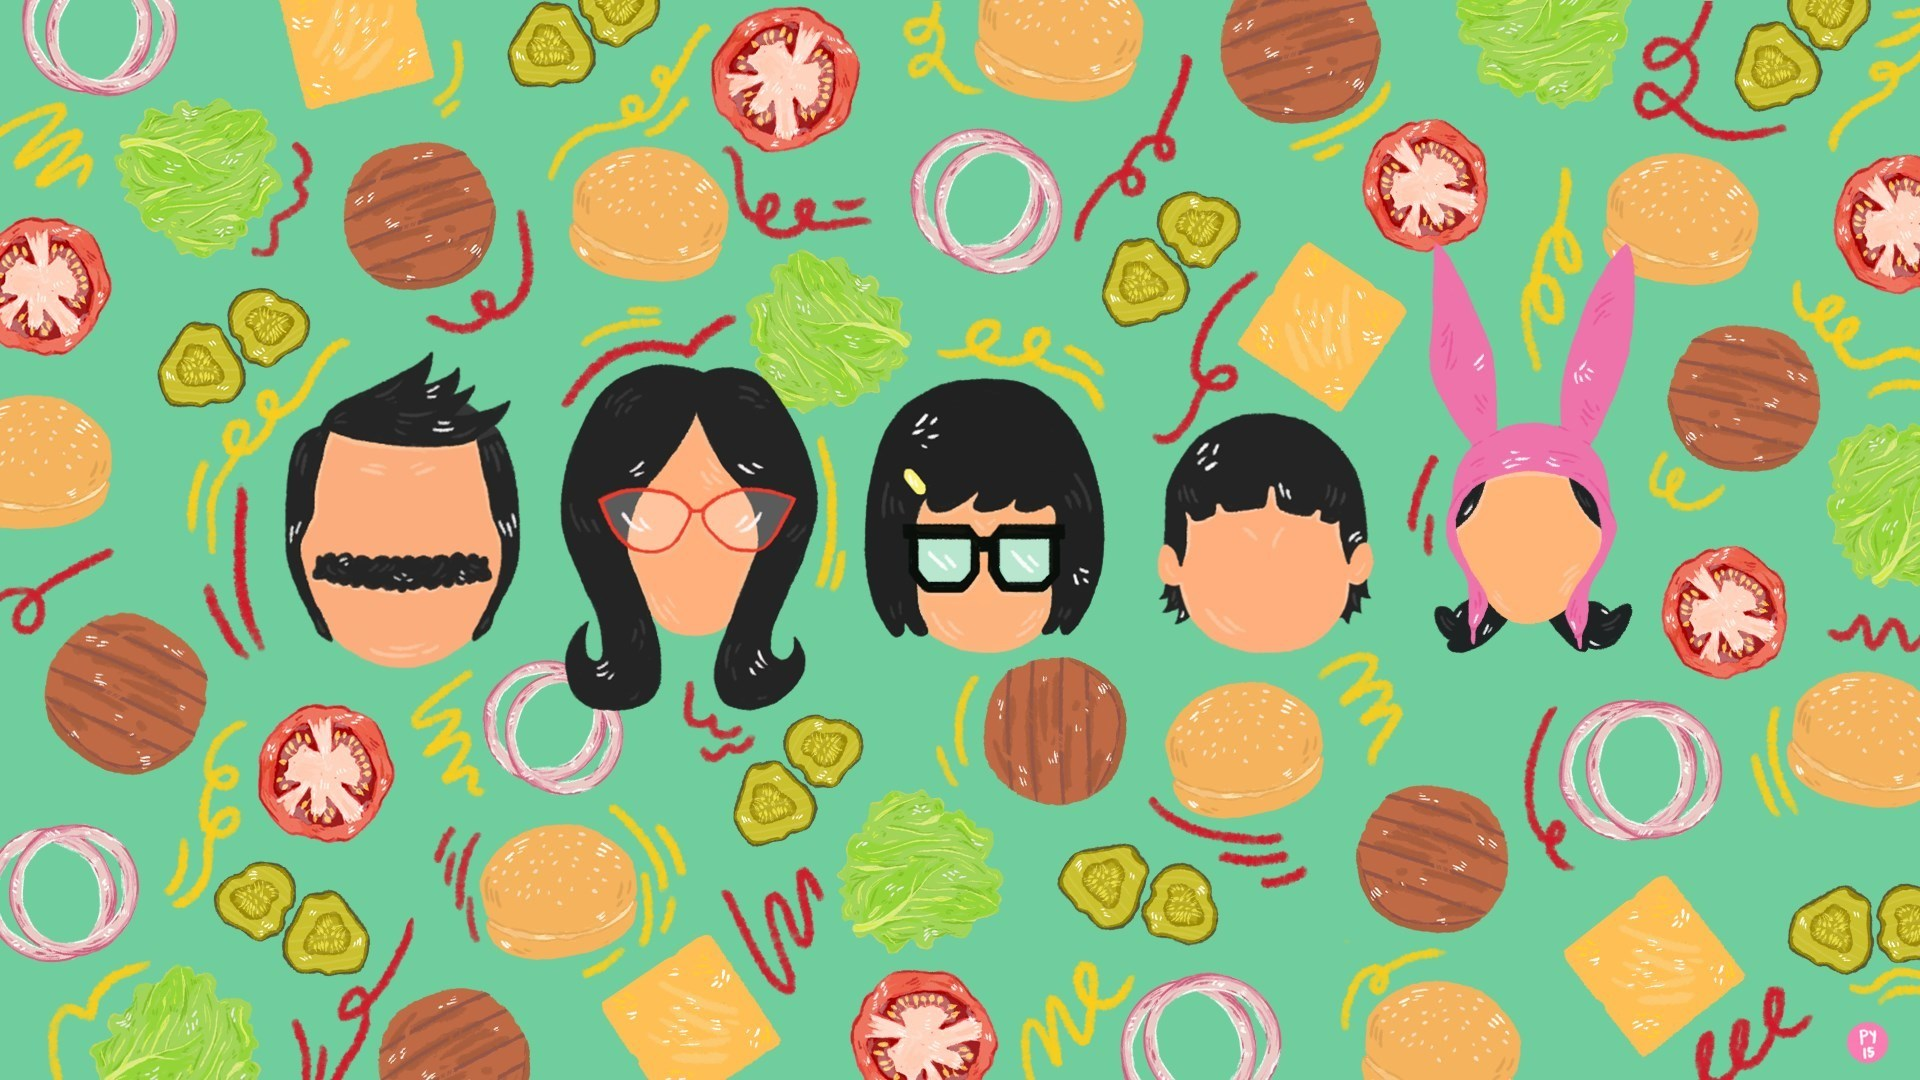 Bob S Burgers Wallpapers Ari Rachel Wallpaper